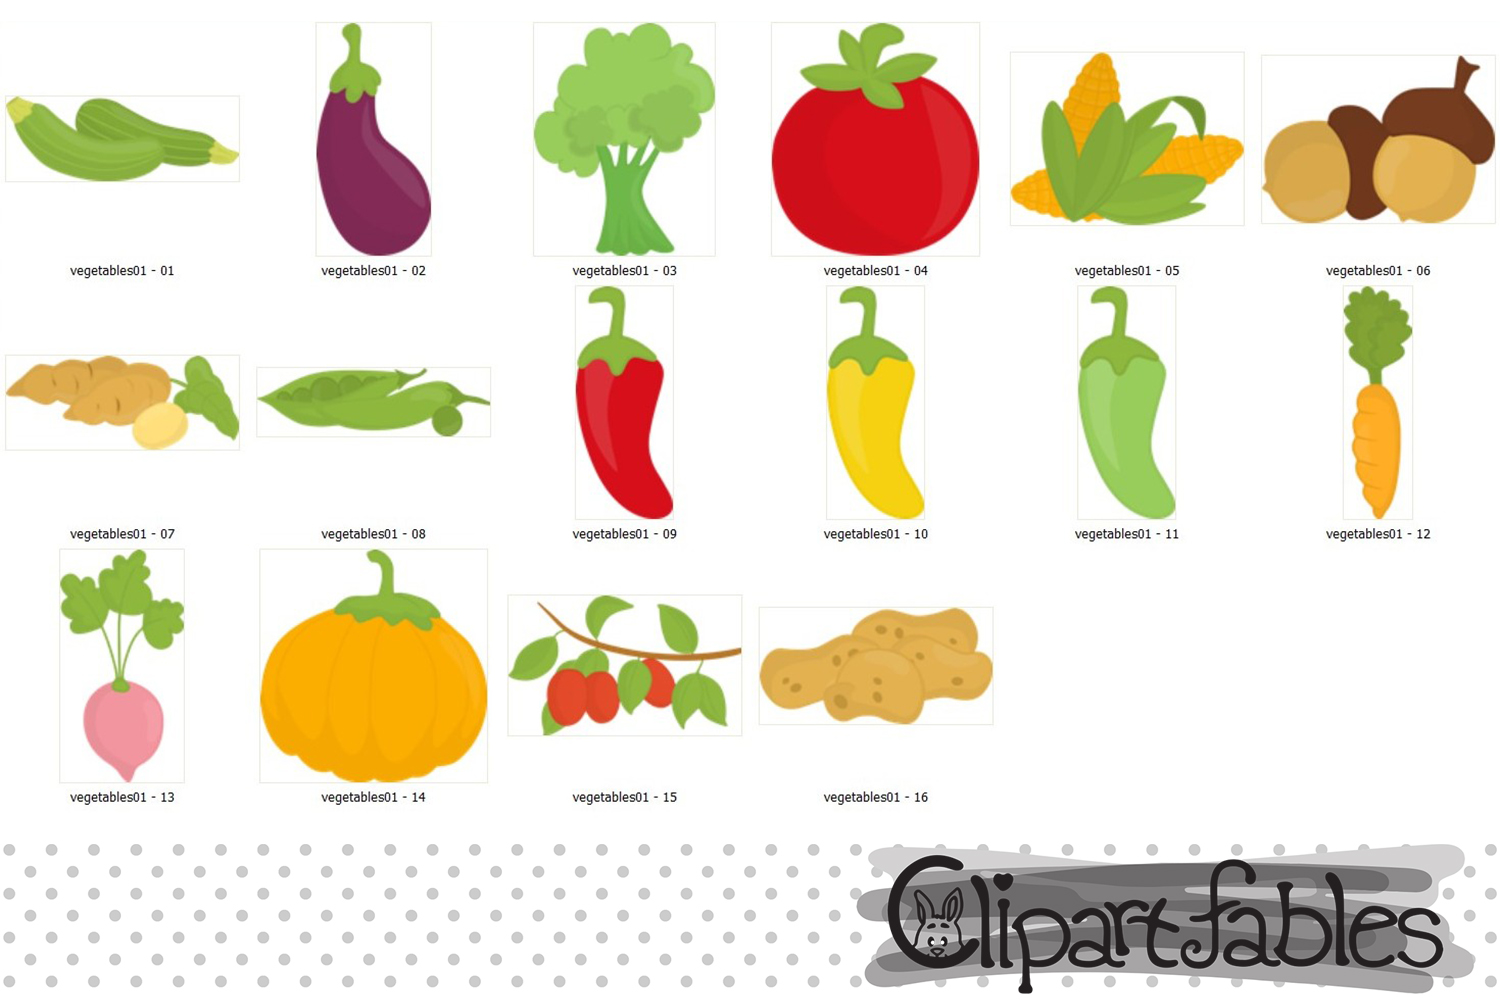 Cute Vegetables clipart - instant download, digital clipart example image 2